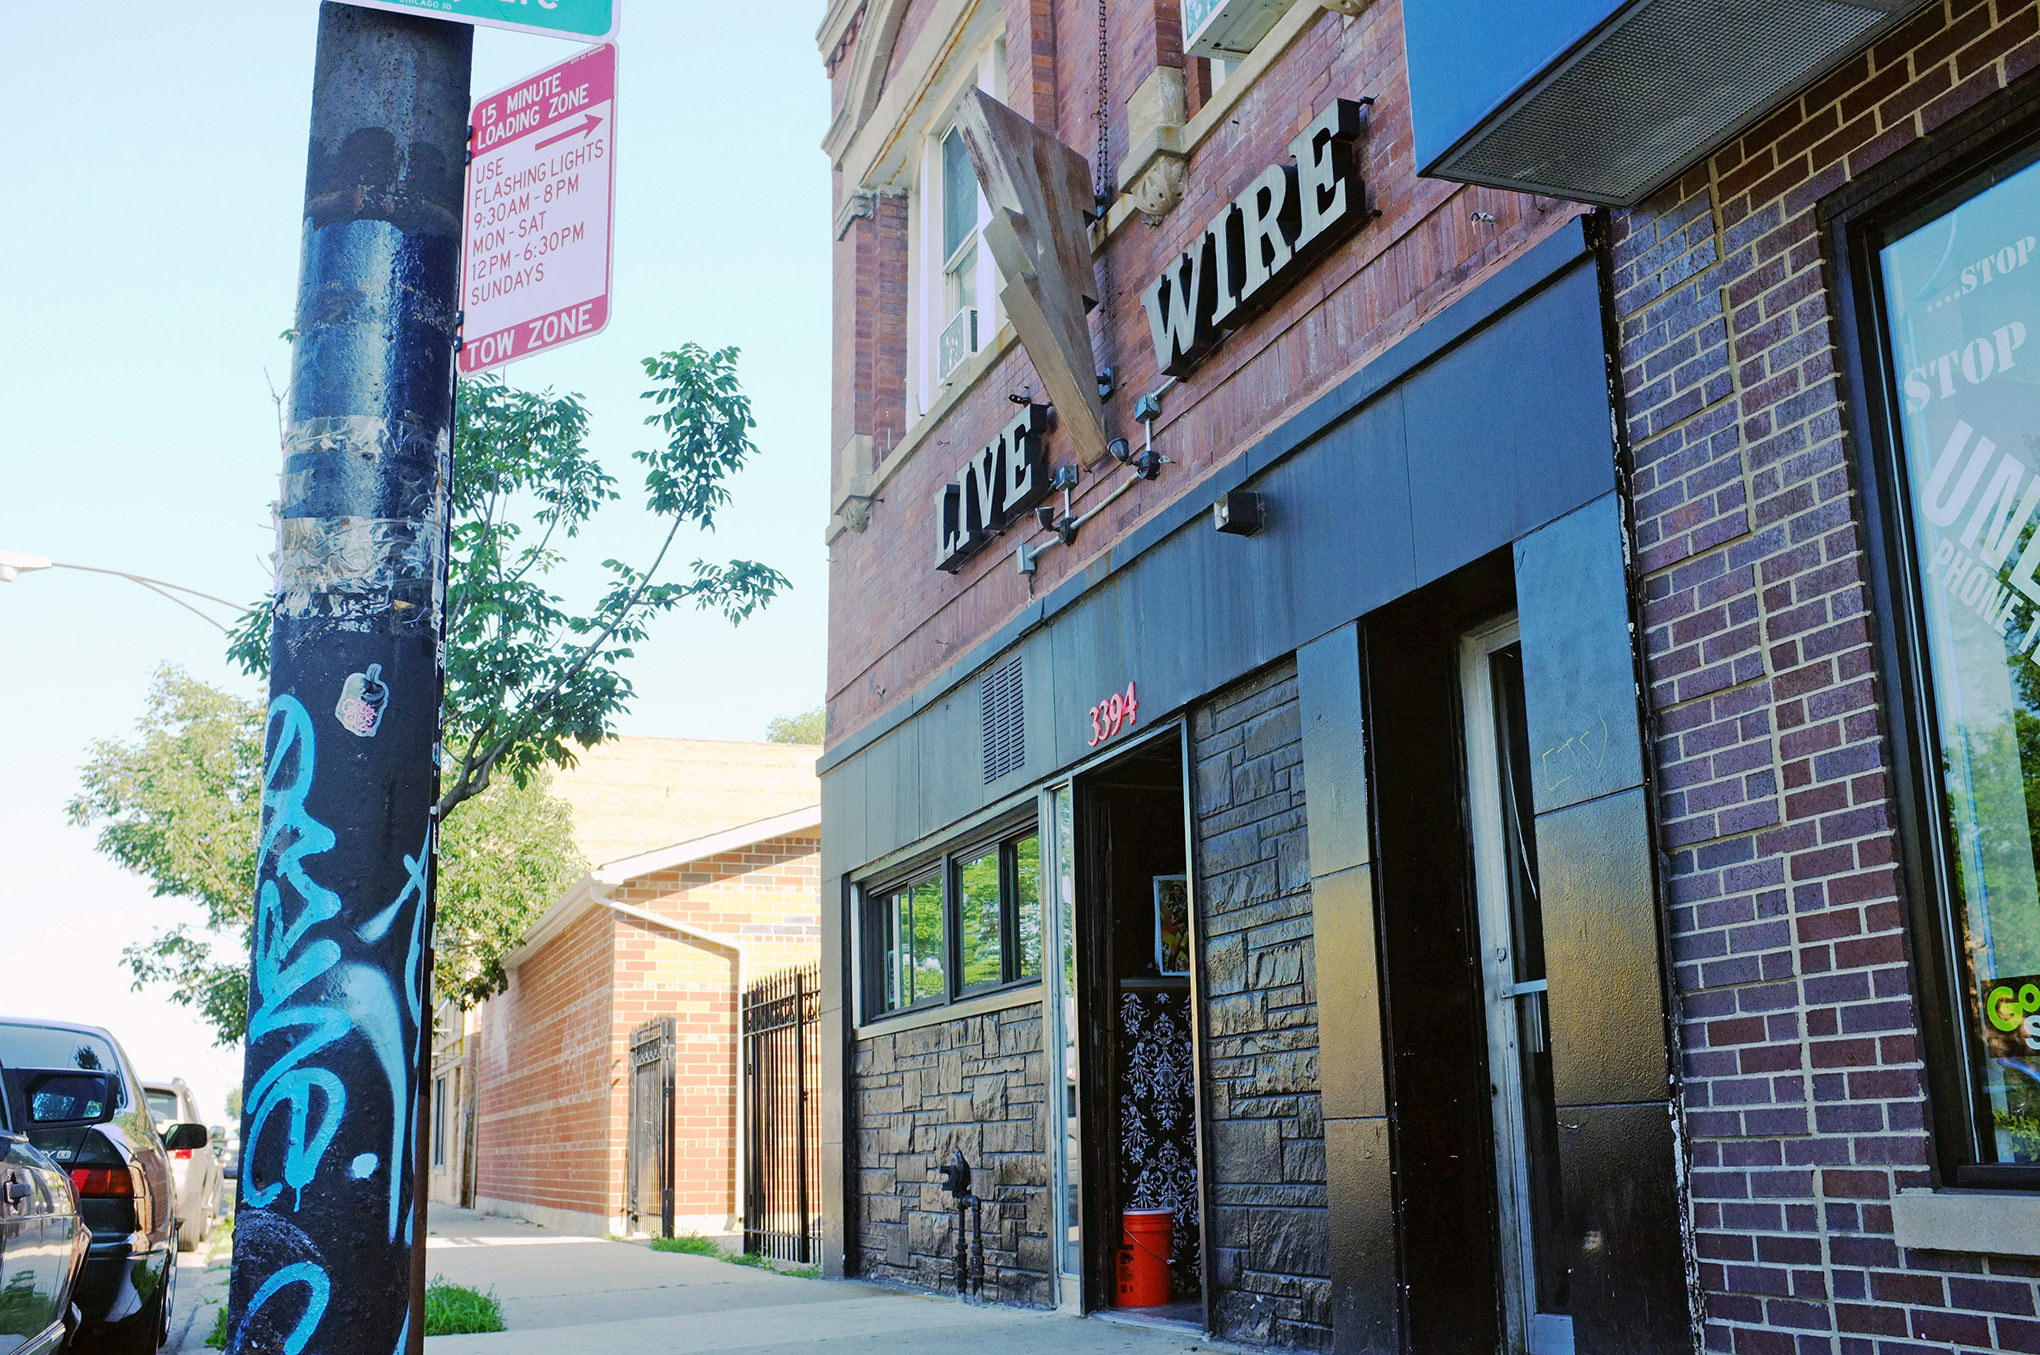 Live Wire Lounge | Bars in Irving Park, Chicago